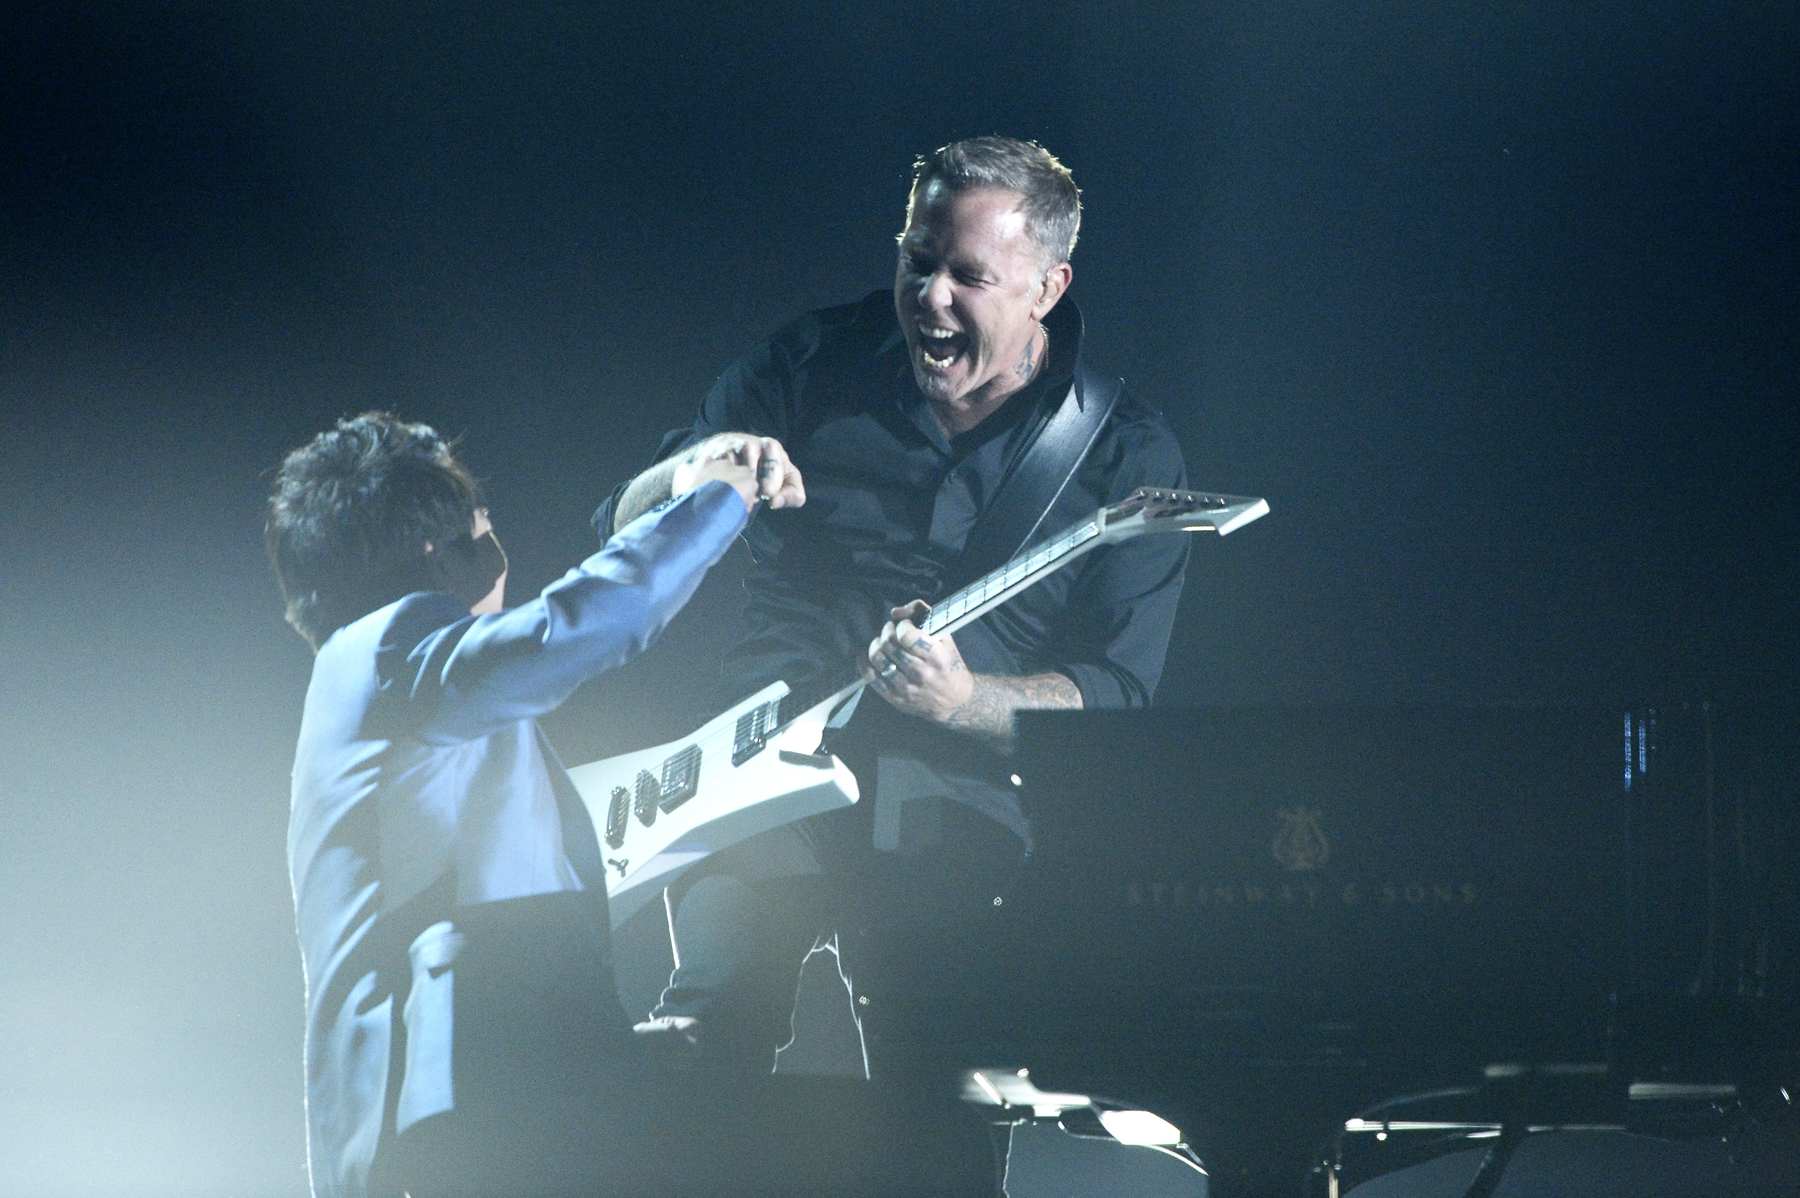 Metallica and Lang Lang Become 'One' at the Grammys